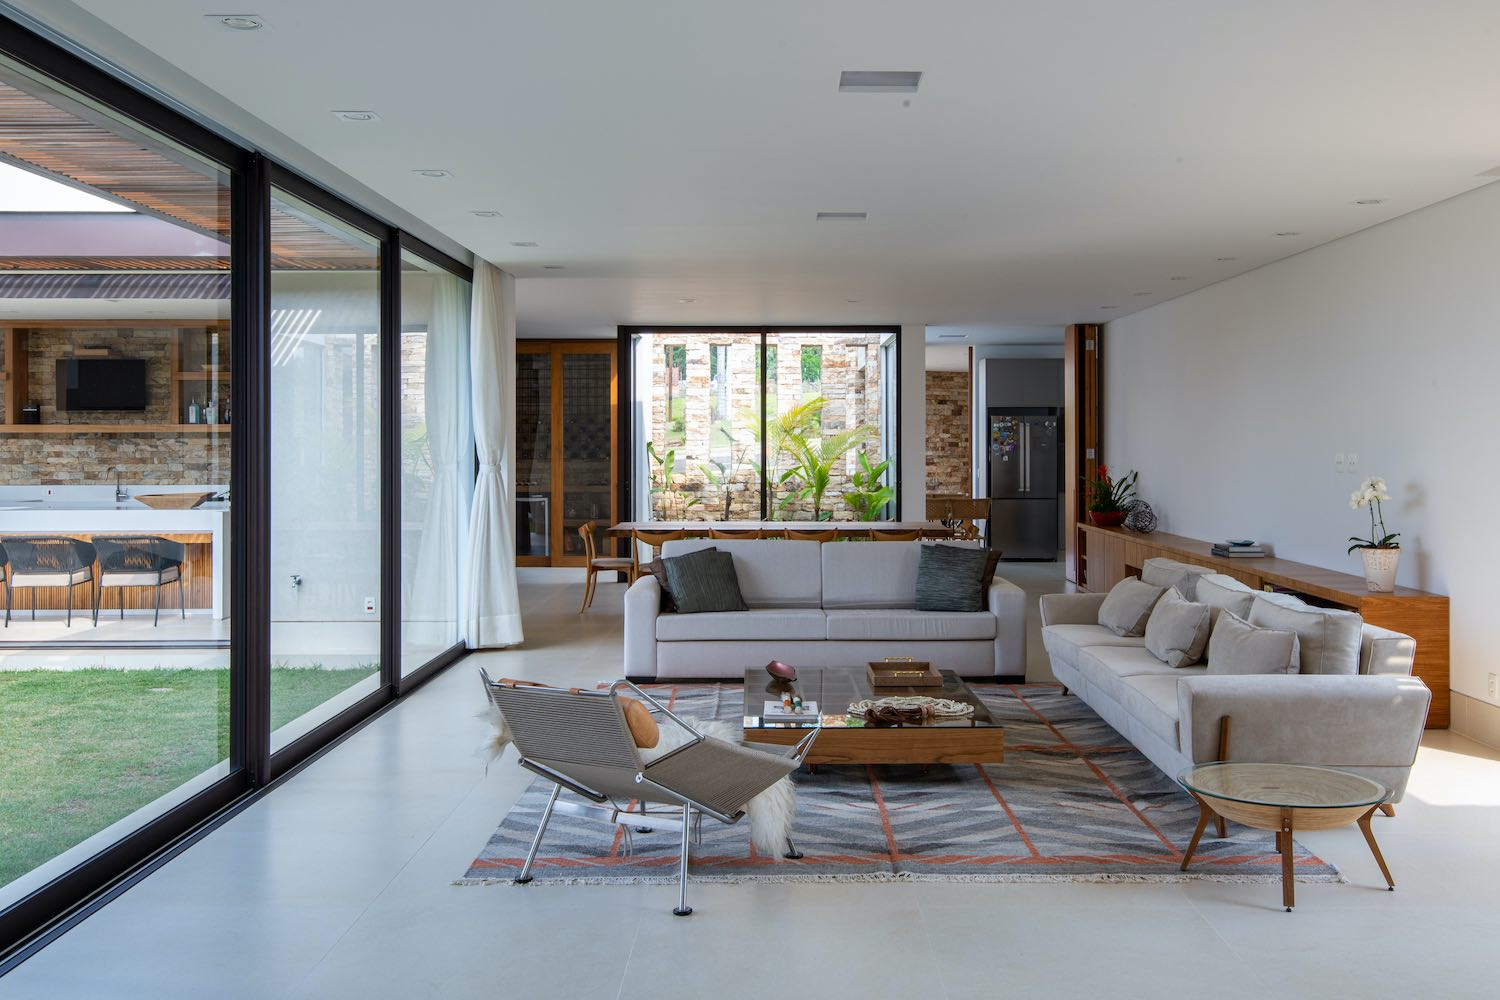 furnished living room with large windows